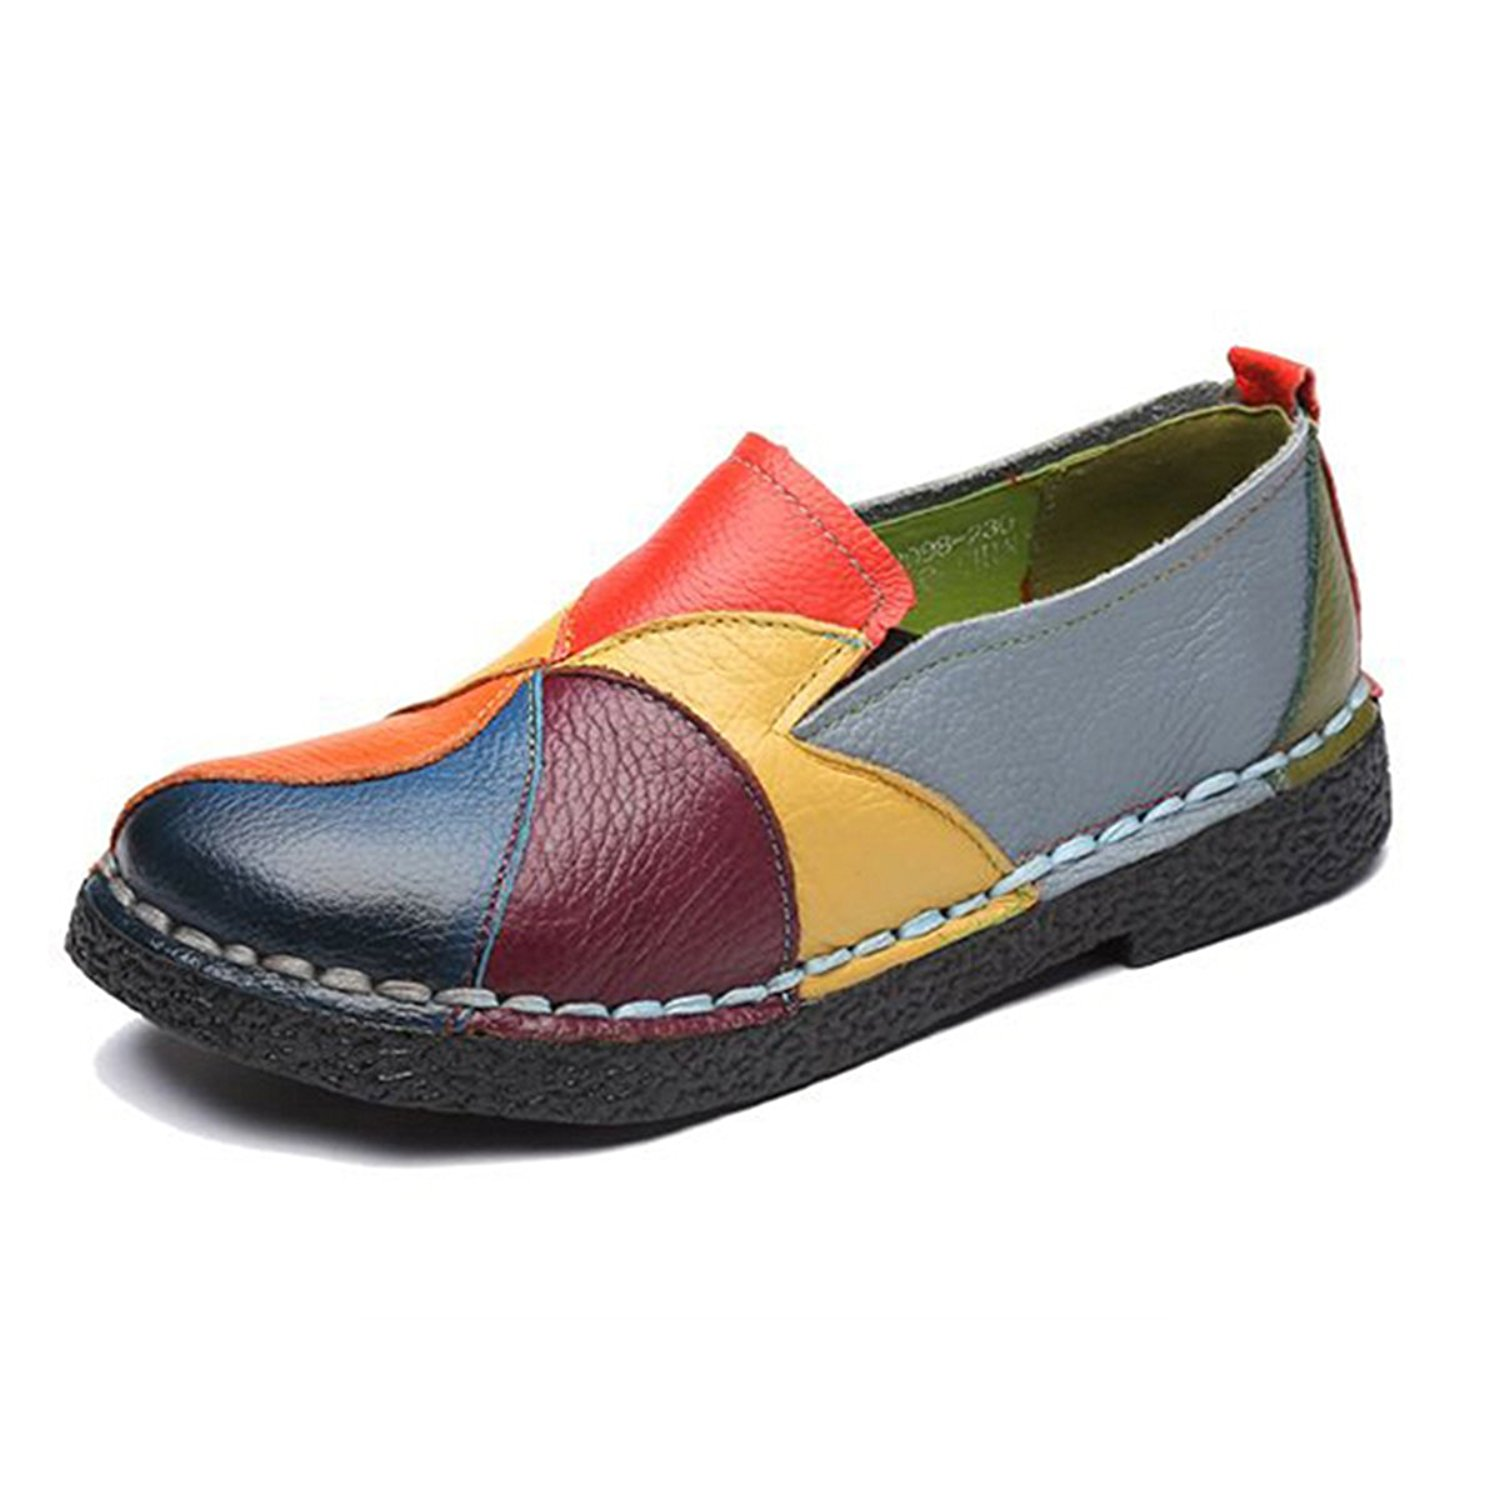 505f8c3e590 Get Quotations · Socofy Slip-On Loafer